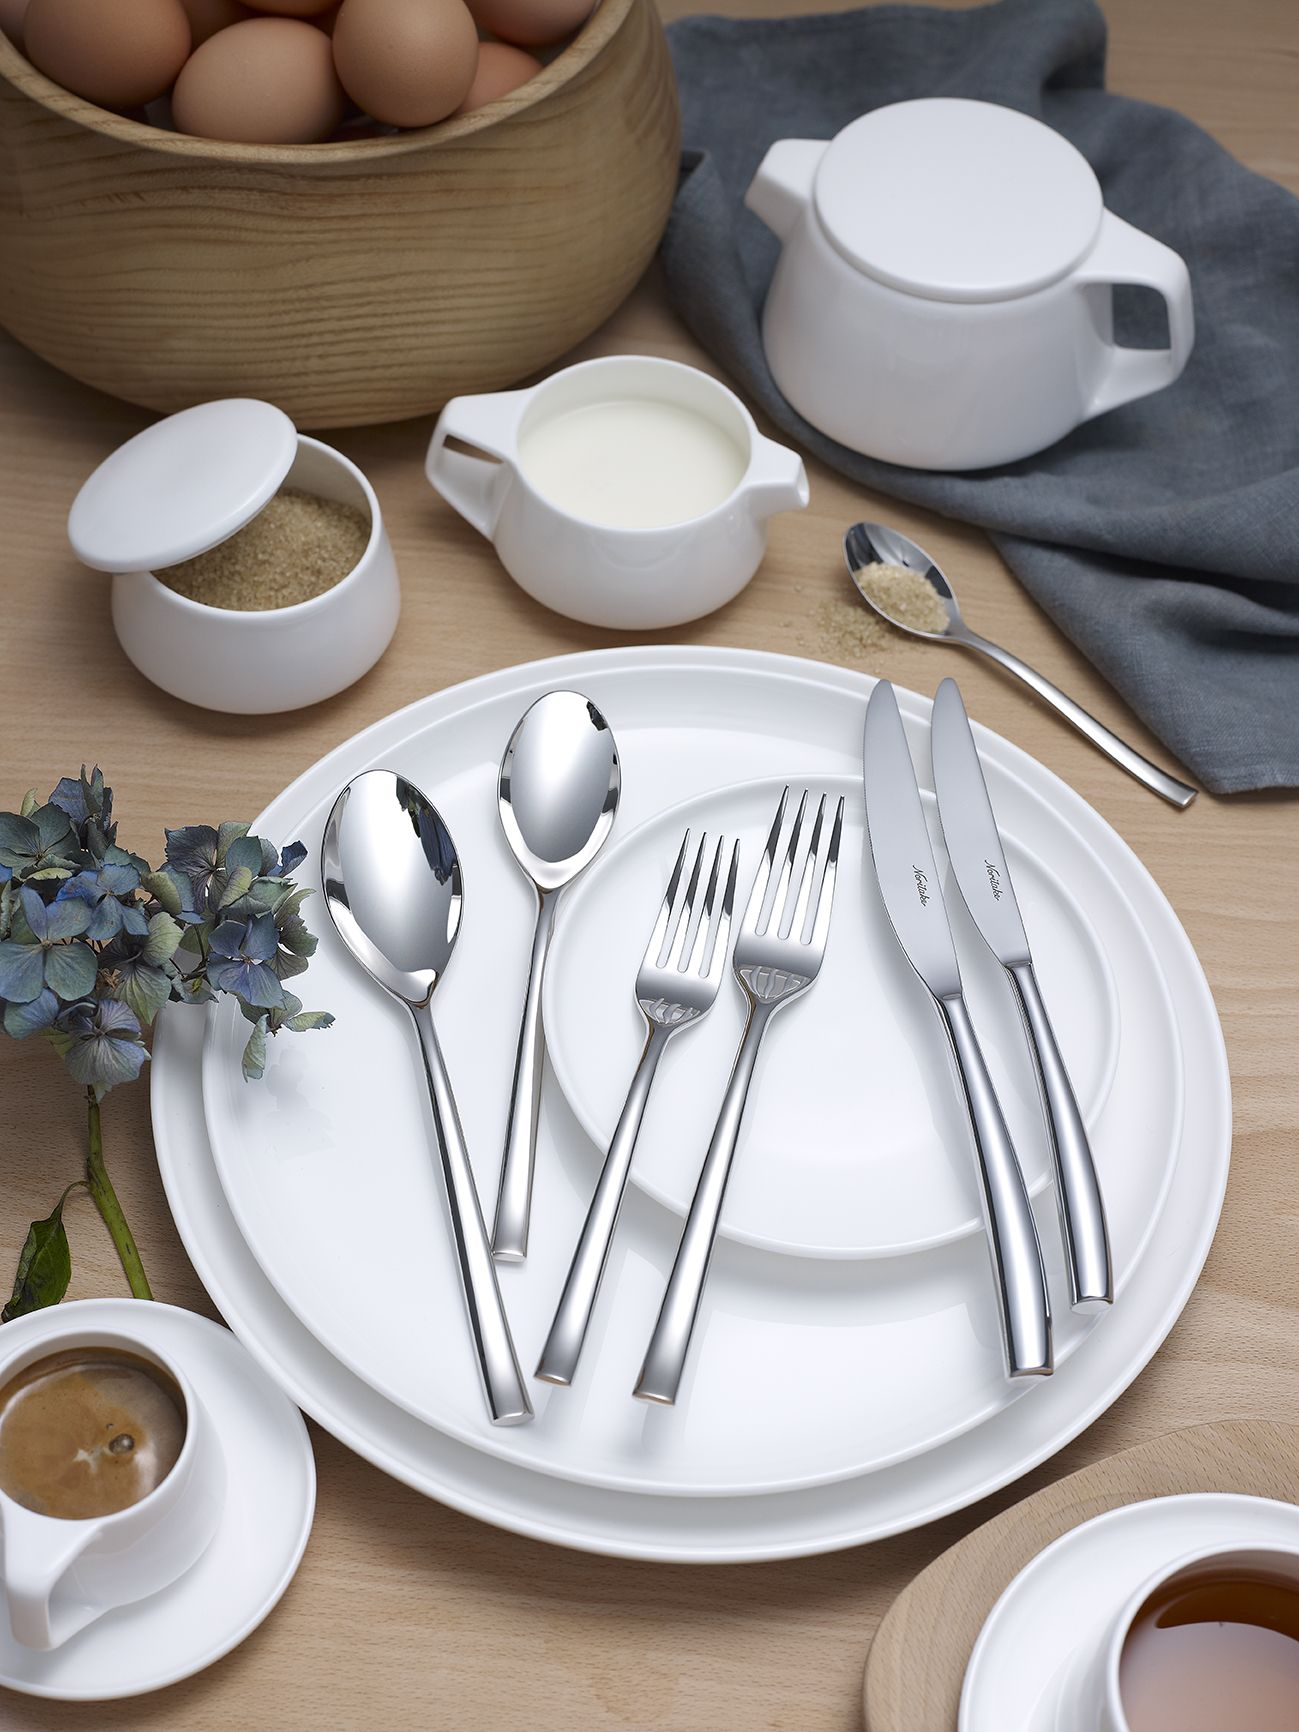 Tableware and cutlery by Noritake tableware designed by Marc Newson industrial designer & Tableware and cutlery by Noritake tableware designed by Marc Newson ...